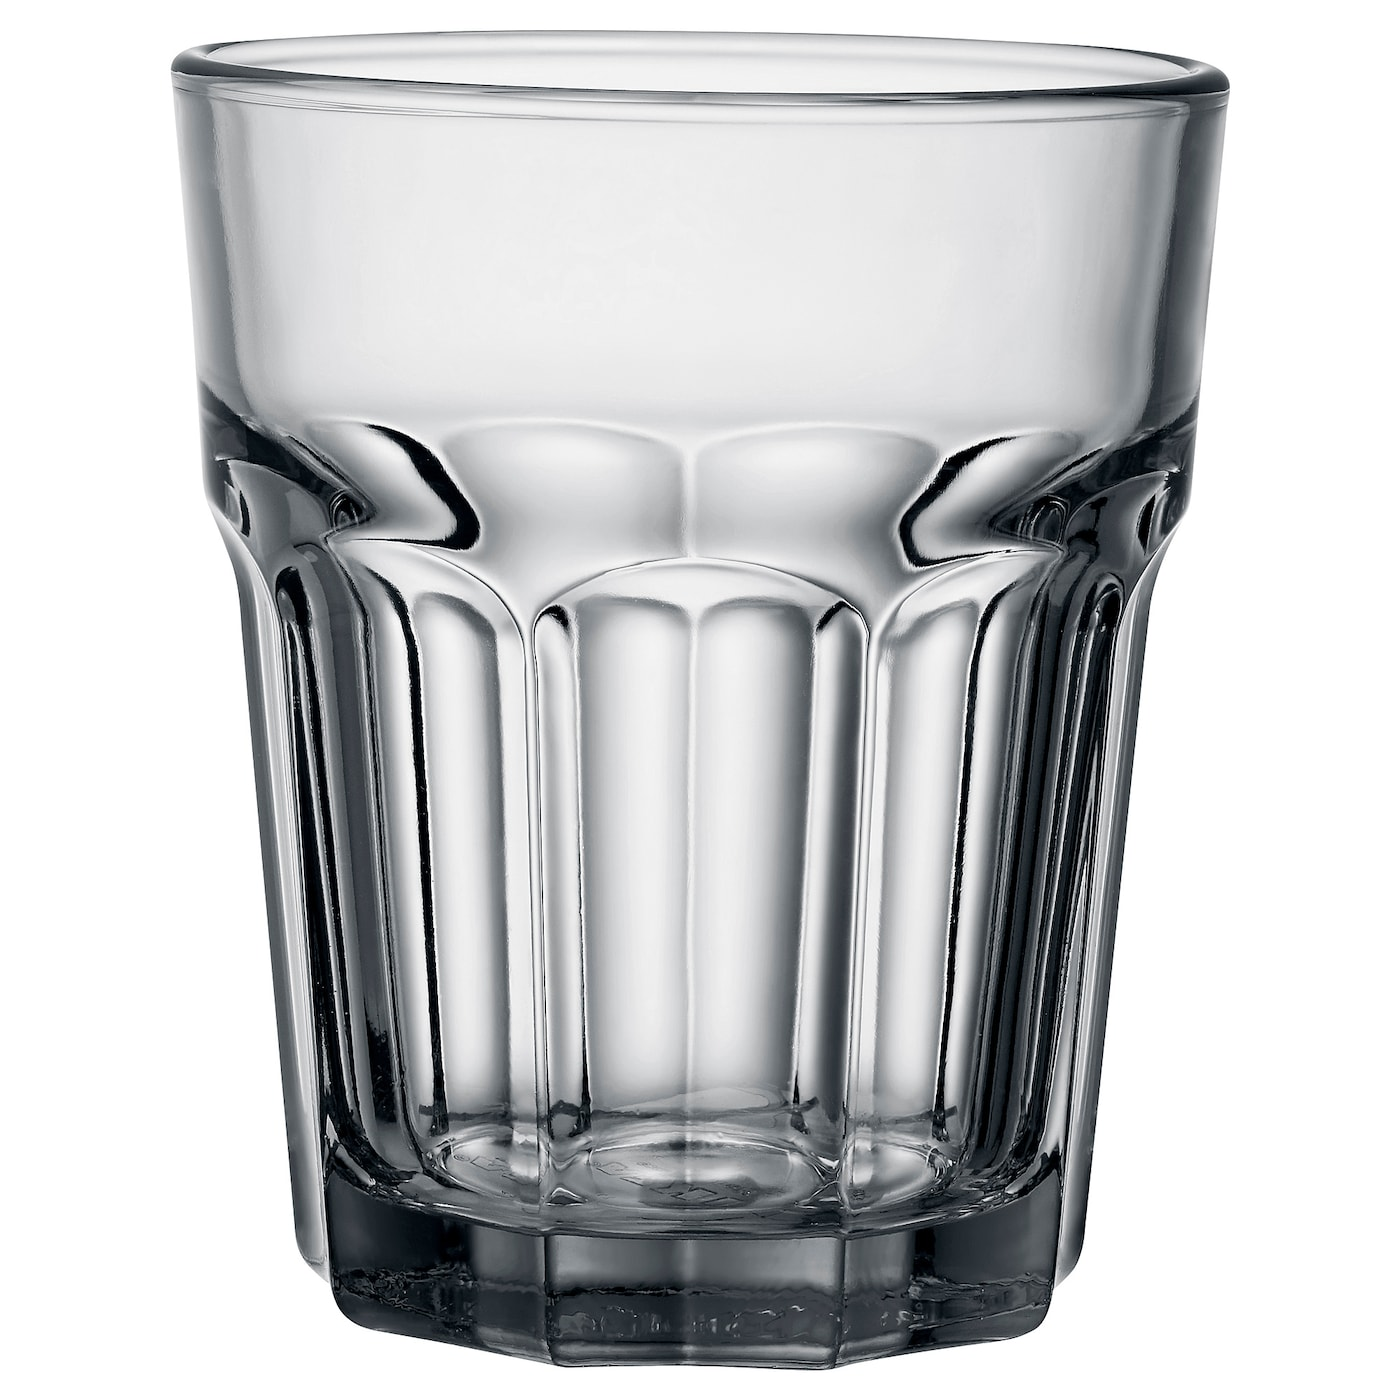 IKEA POKAL glass Also suitable for hot drinks.